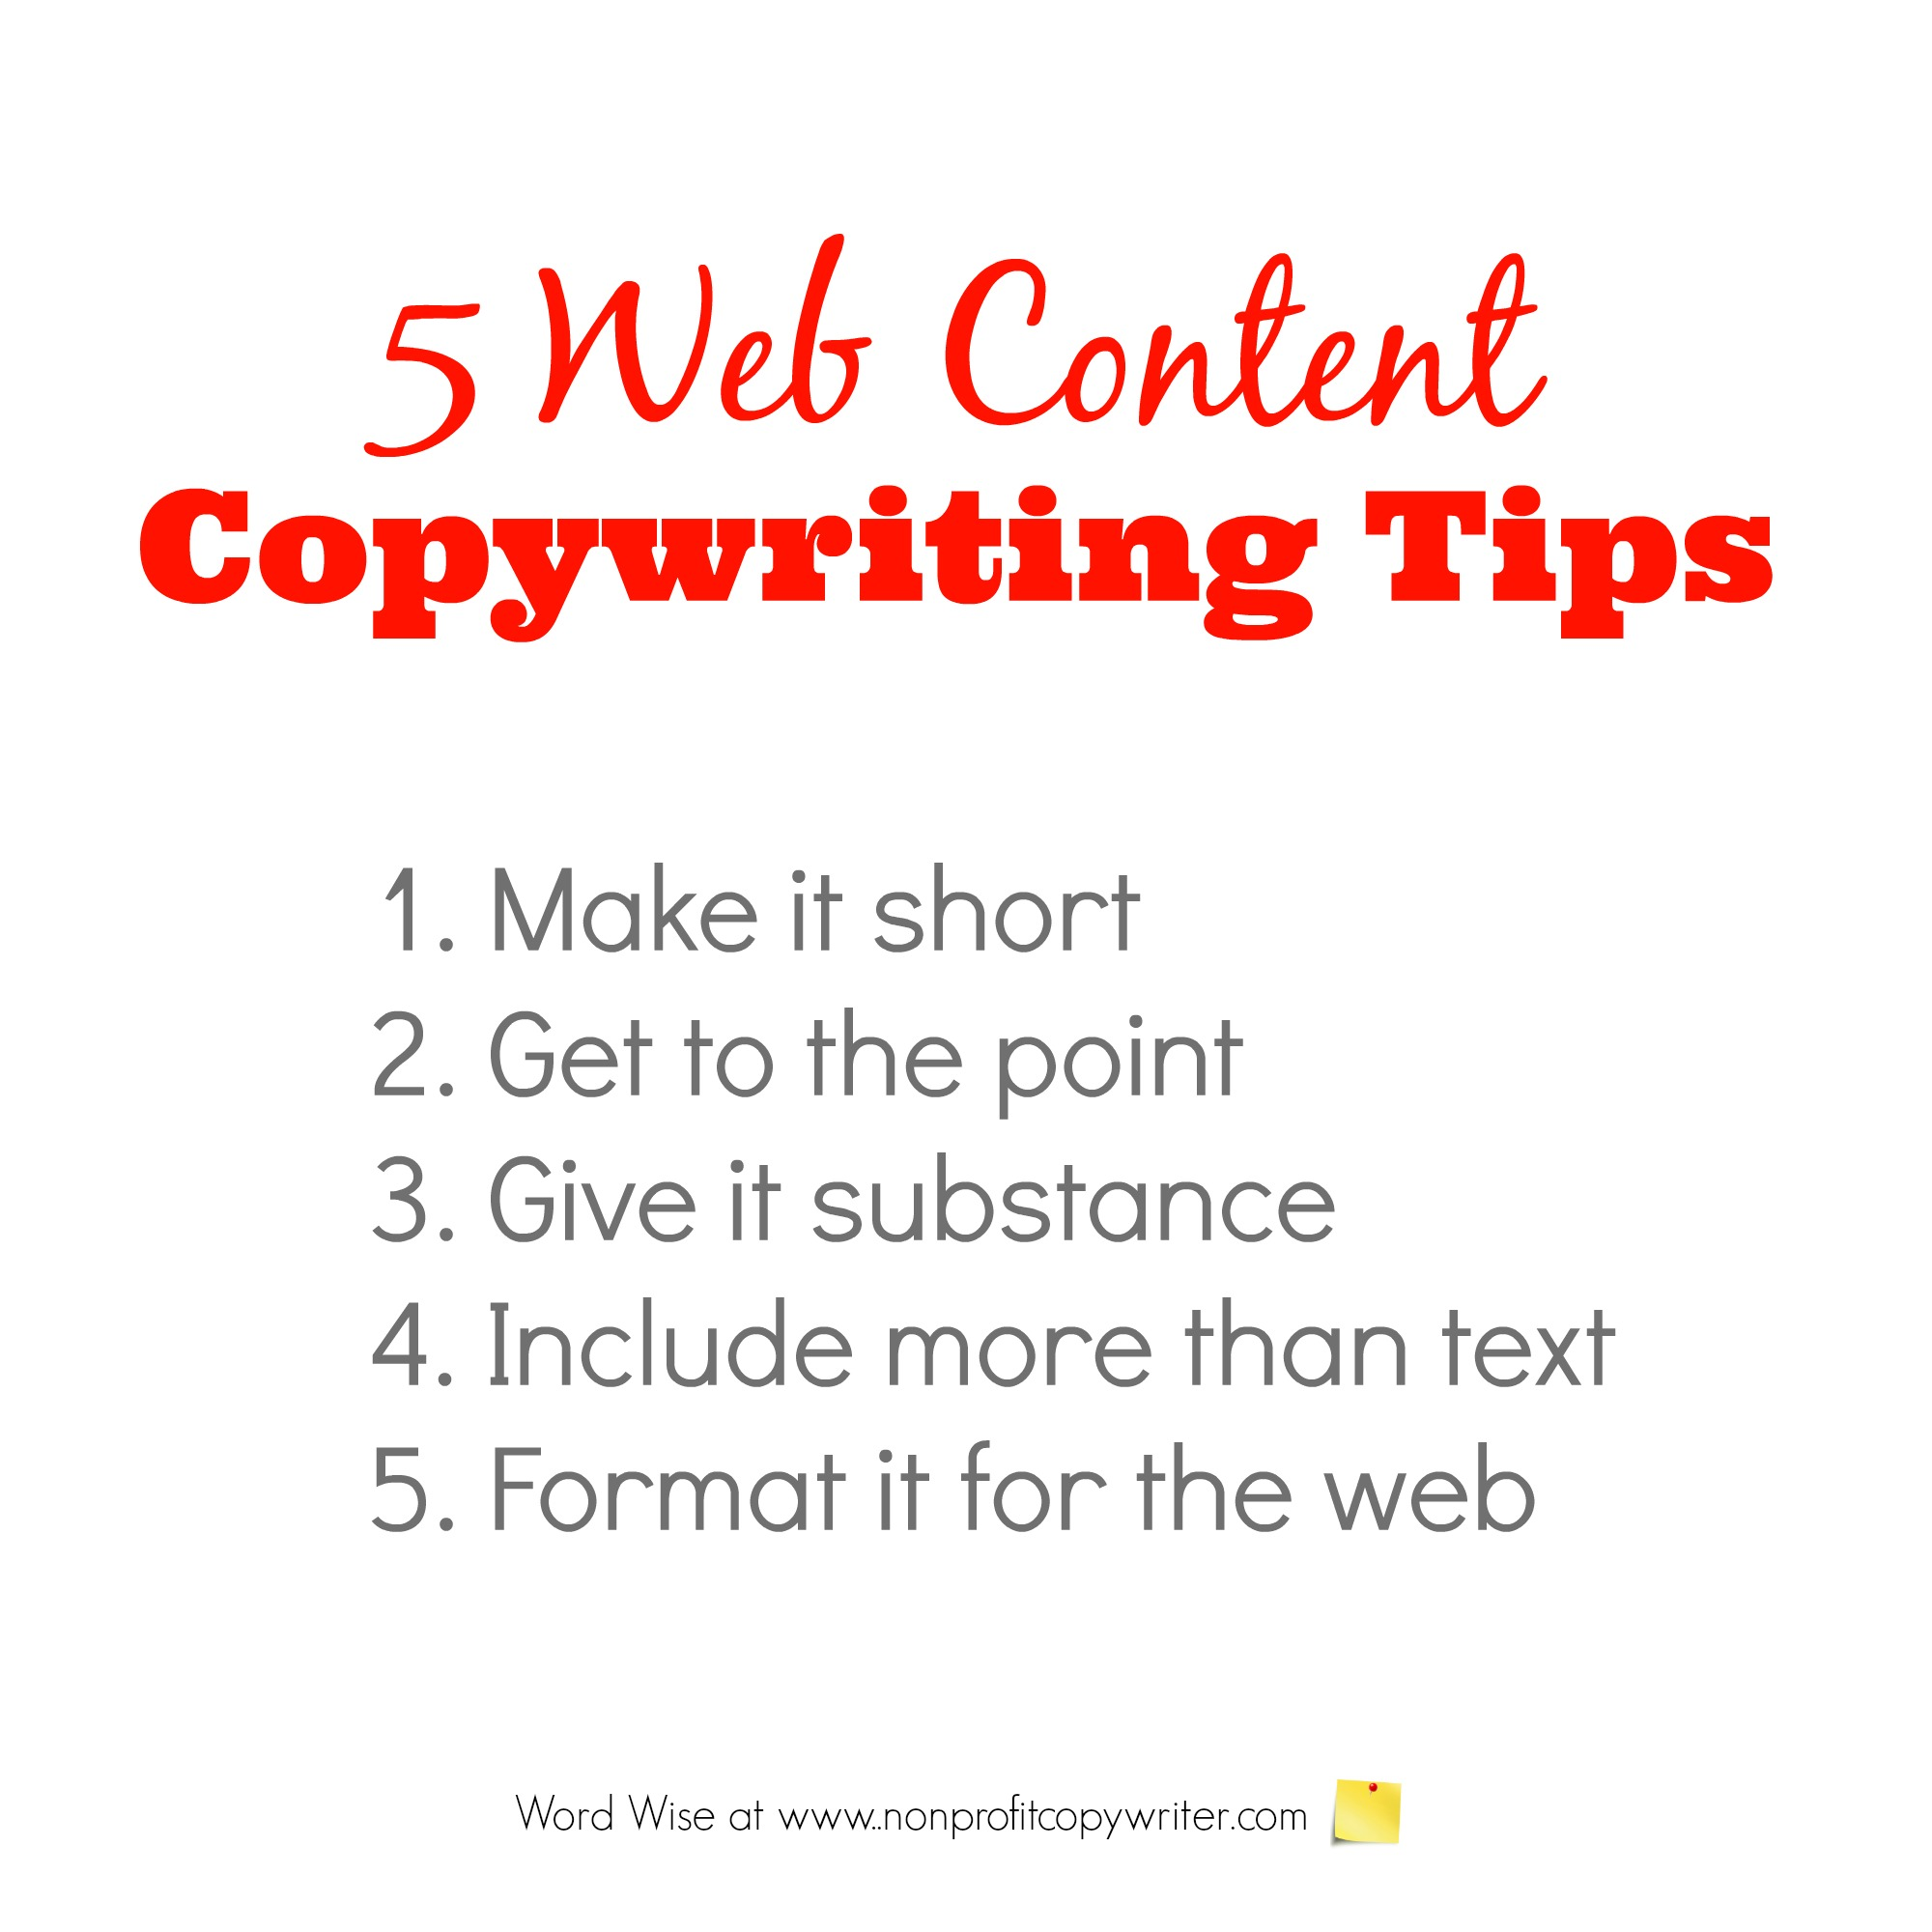 5 Web Content Copywriting Tips with Word Wise at Nonprofit Copywriter